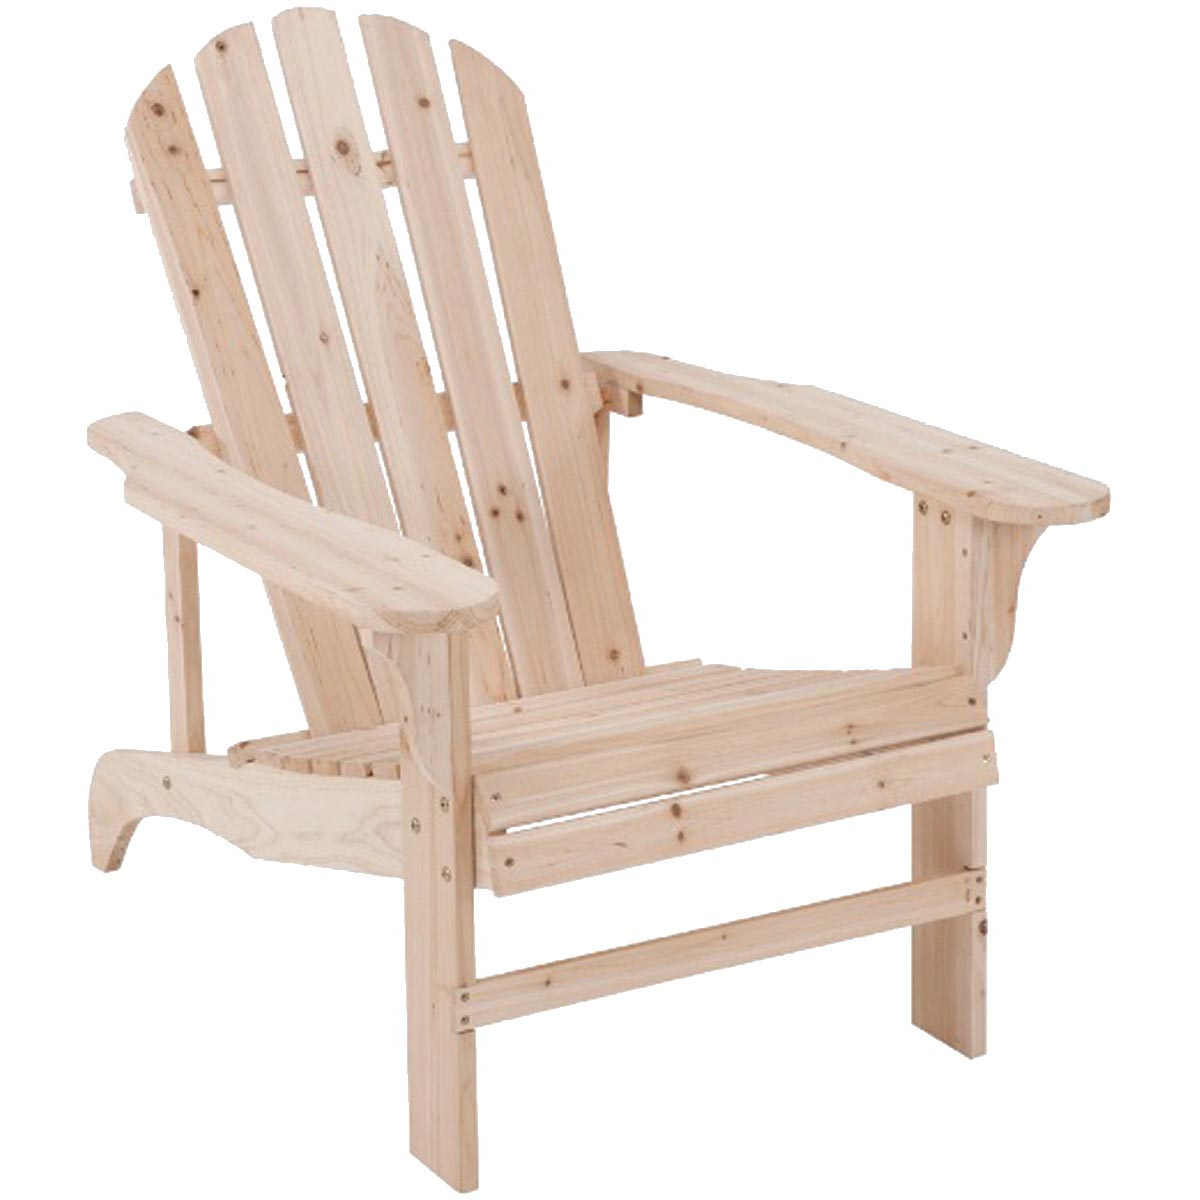 Picture of Seasonal Trends JN-16N Adirondack Chair, 5-1/4 in W, 20-1/2 in D, 36-3/4 in H, Cypress Seat, Cypress Frame